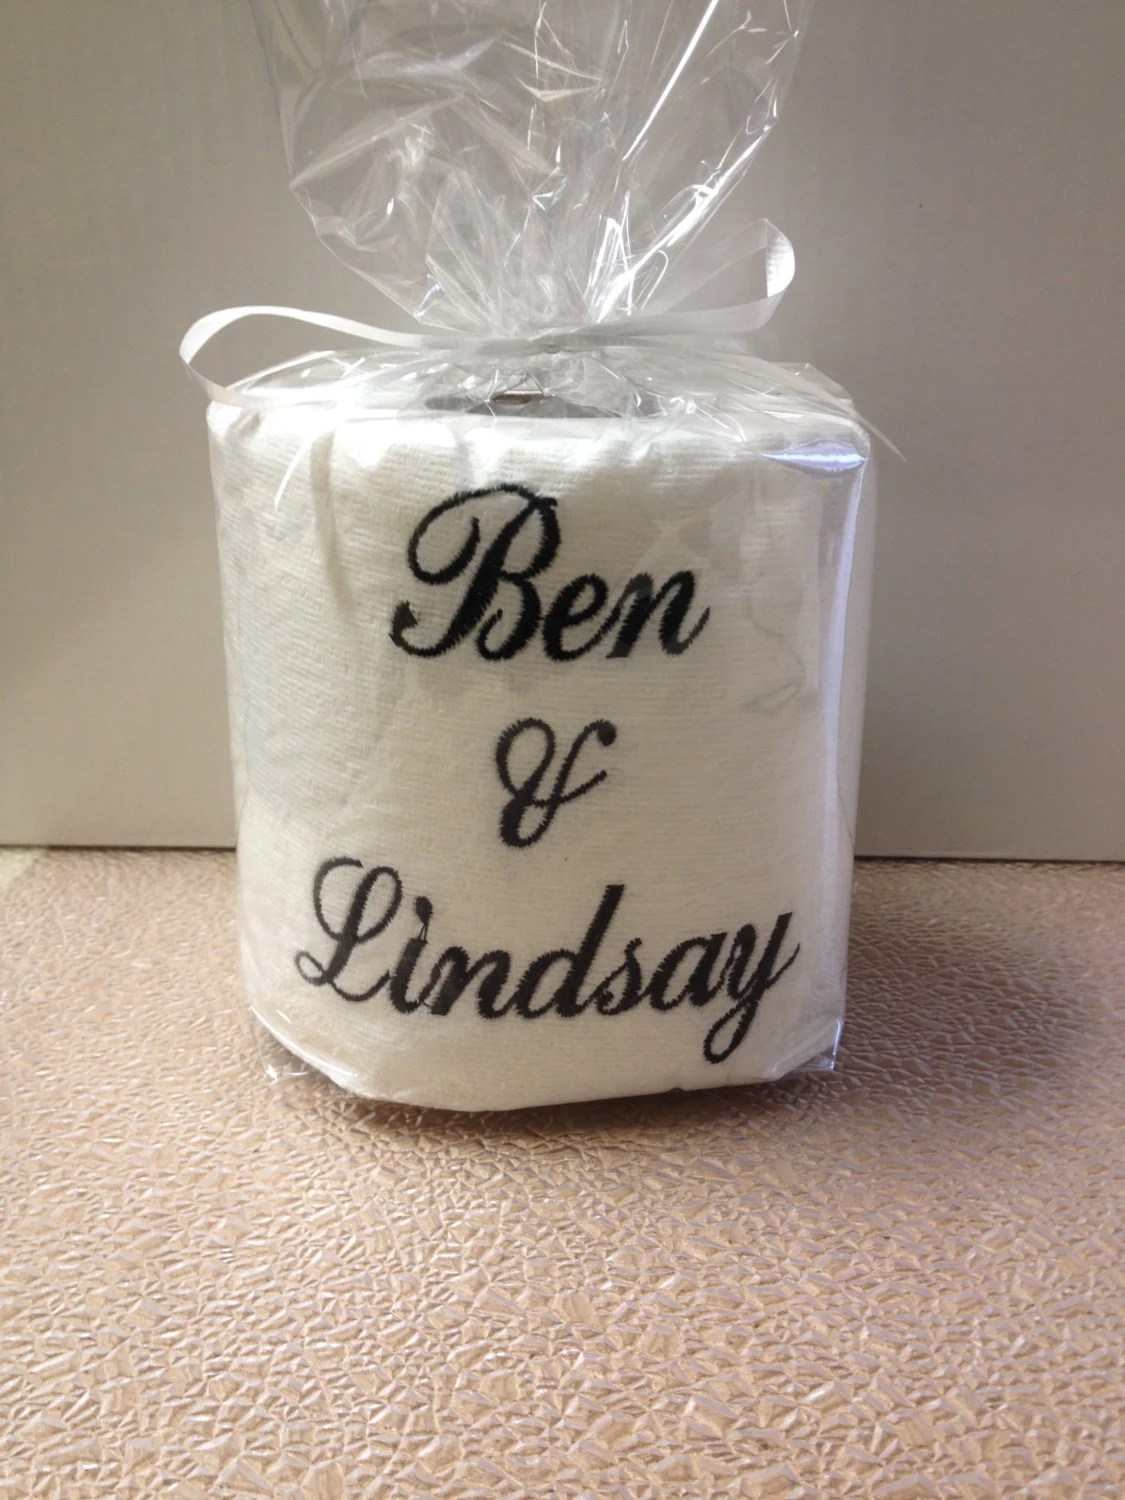 Custom Made Toilet Paper Embroidered Personalized Toilet Paper With Names Or Monograms